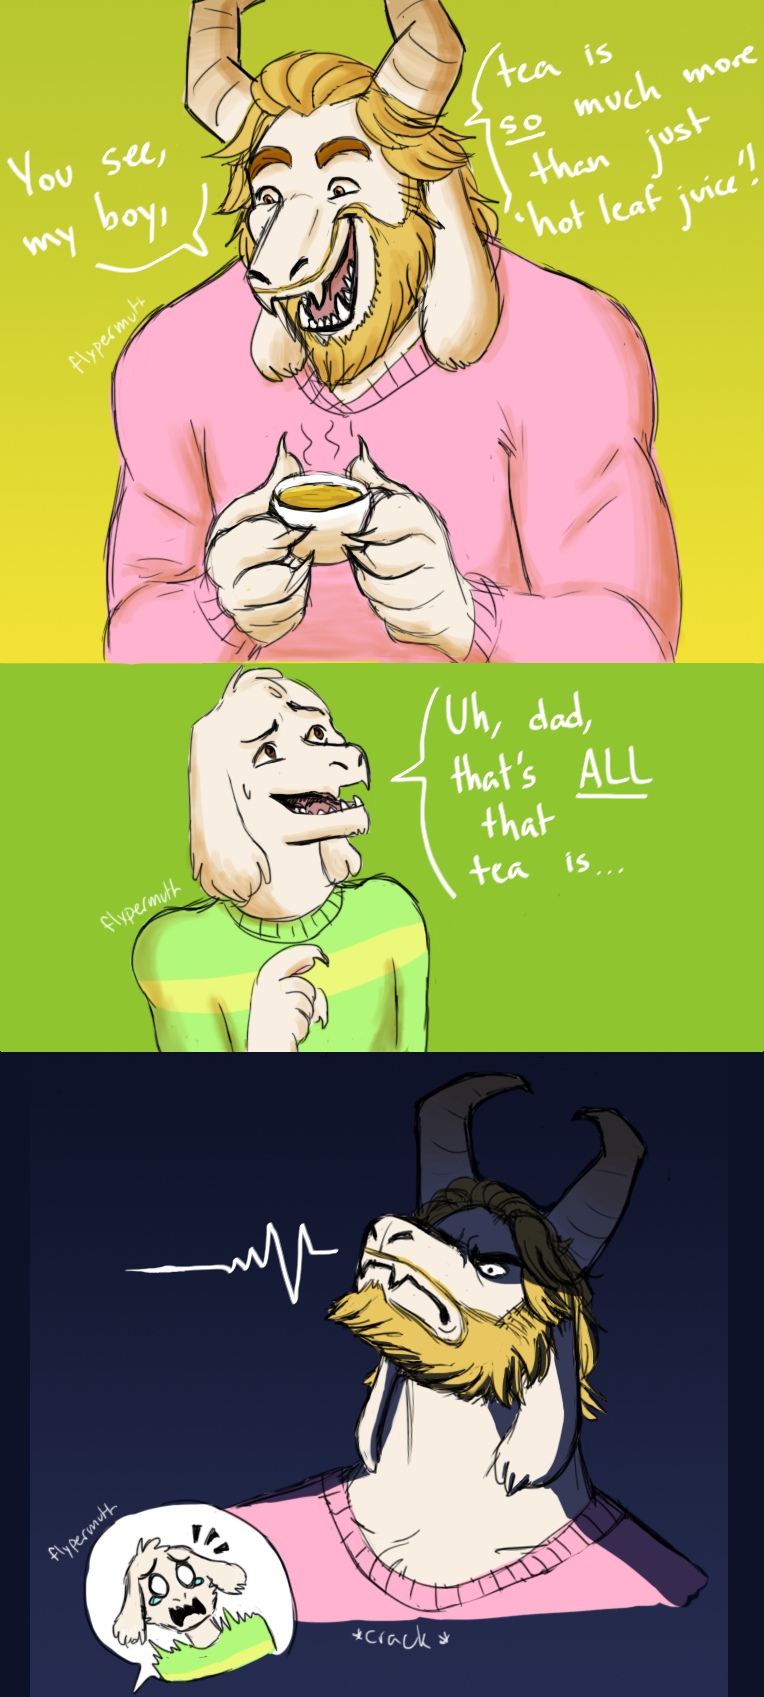 Undertale | Hot Leaf Juice by NorthernLightWolf on DeviantArt